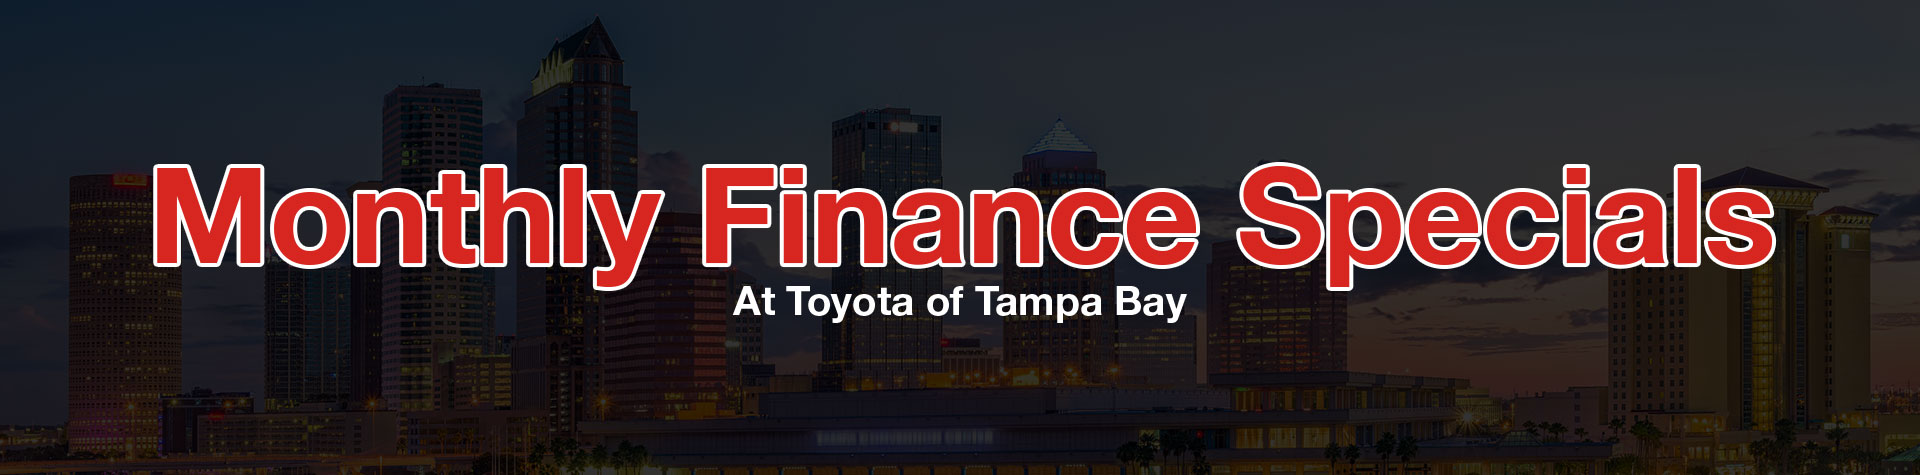 Monthly Finance Specials At Toyota of Tampa Bay